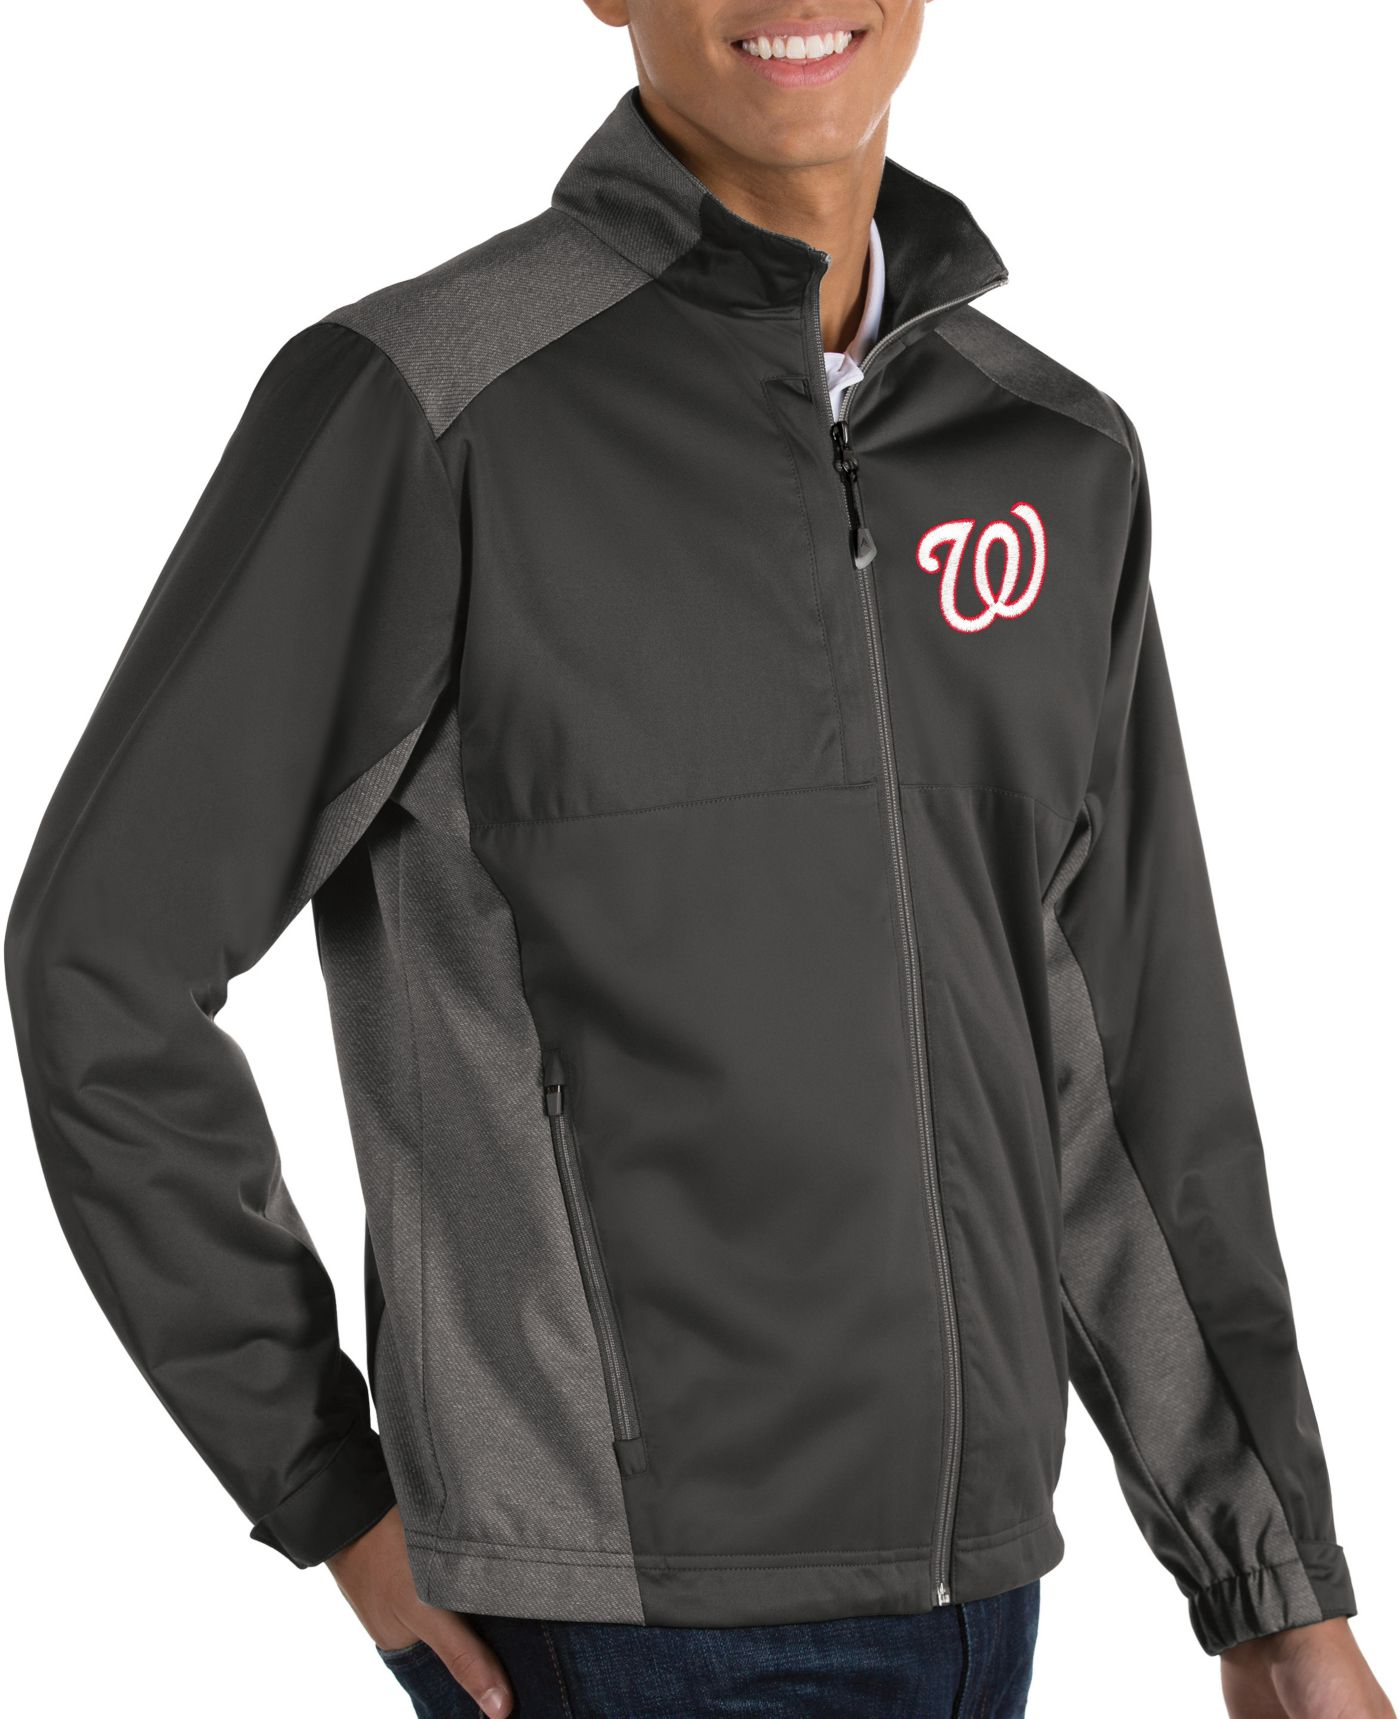 Antigua Men's Washington Nationals Revolve Grey Full-Zip Jacket